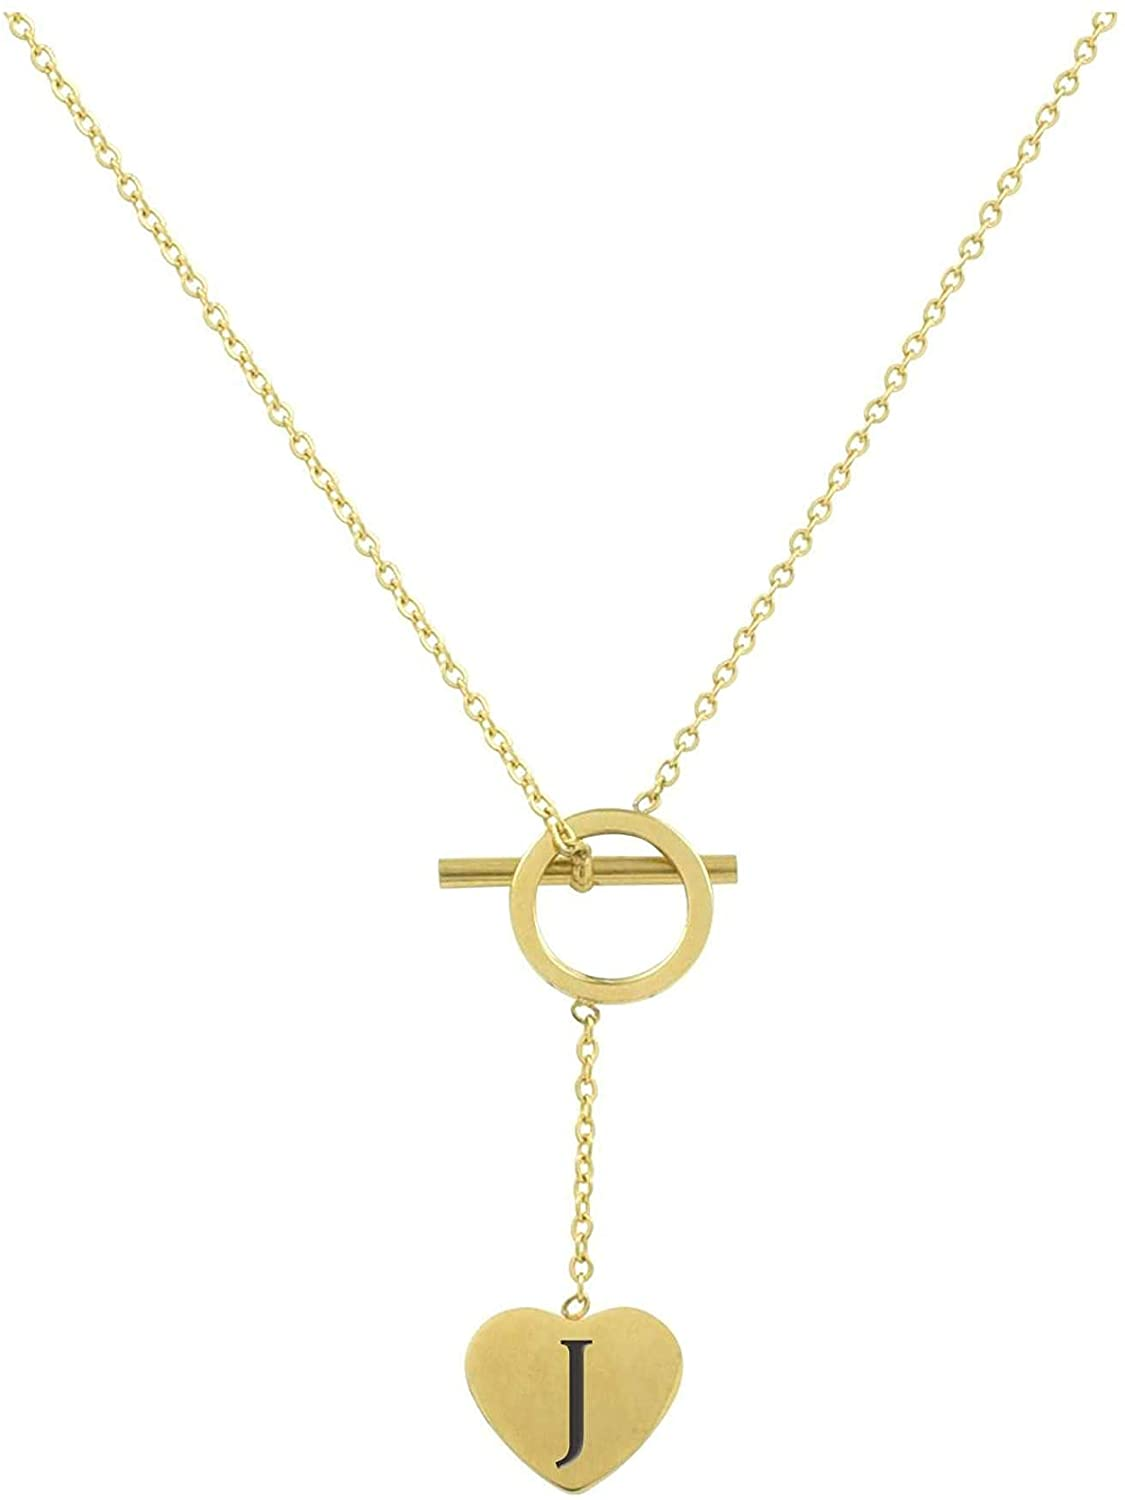 Pink Box Heart Lariat Initial Necklace J - Gold